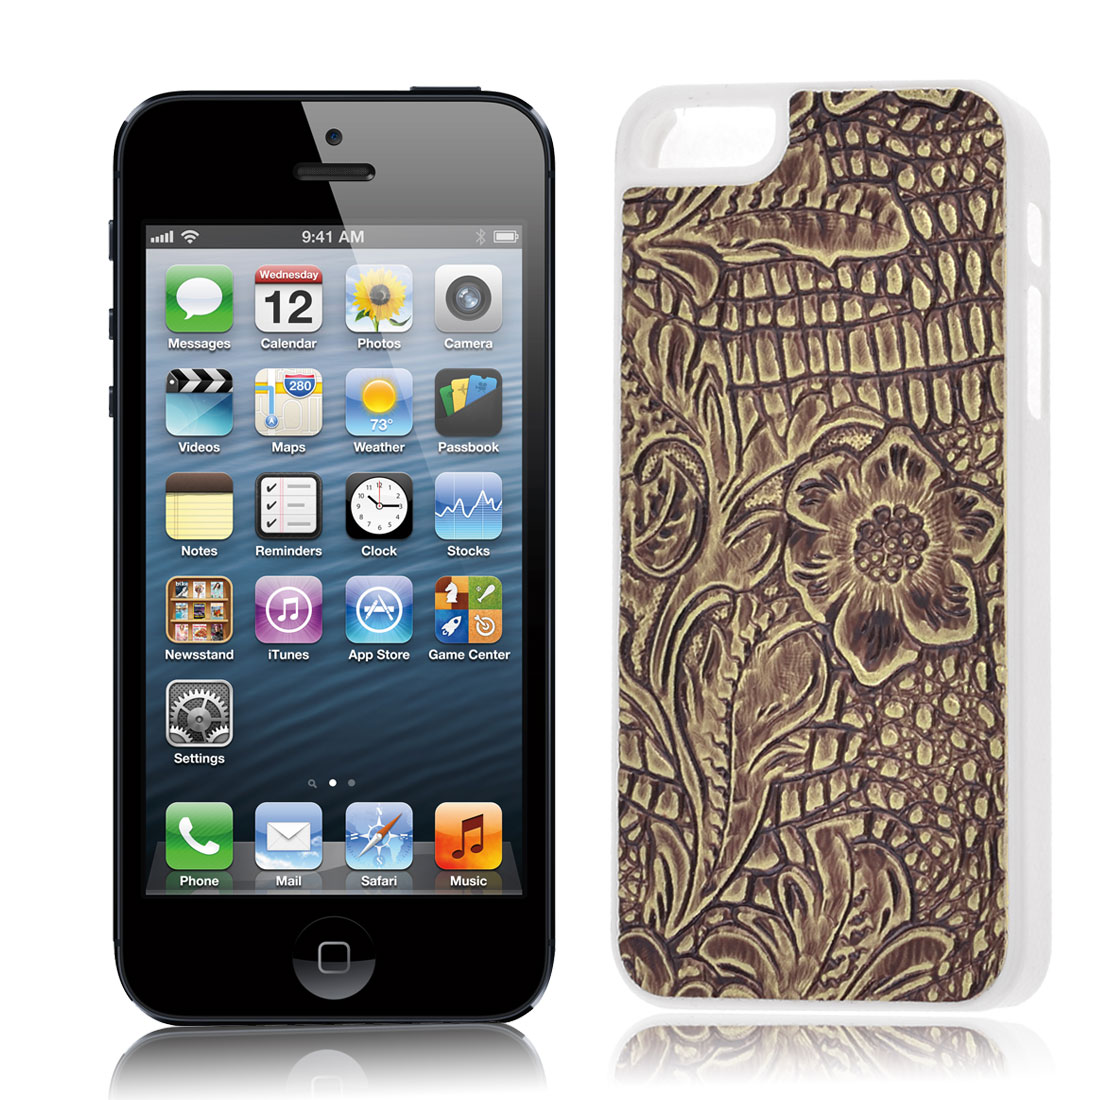 Floral Pattern Hard Back Case Cover Brown for iPhone 5 5G 5th Gen